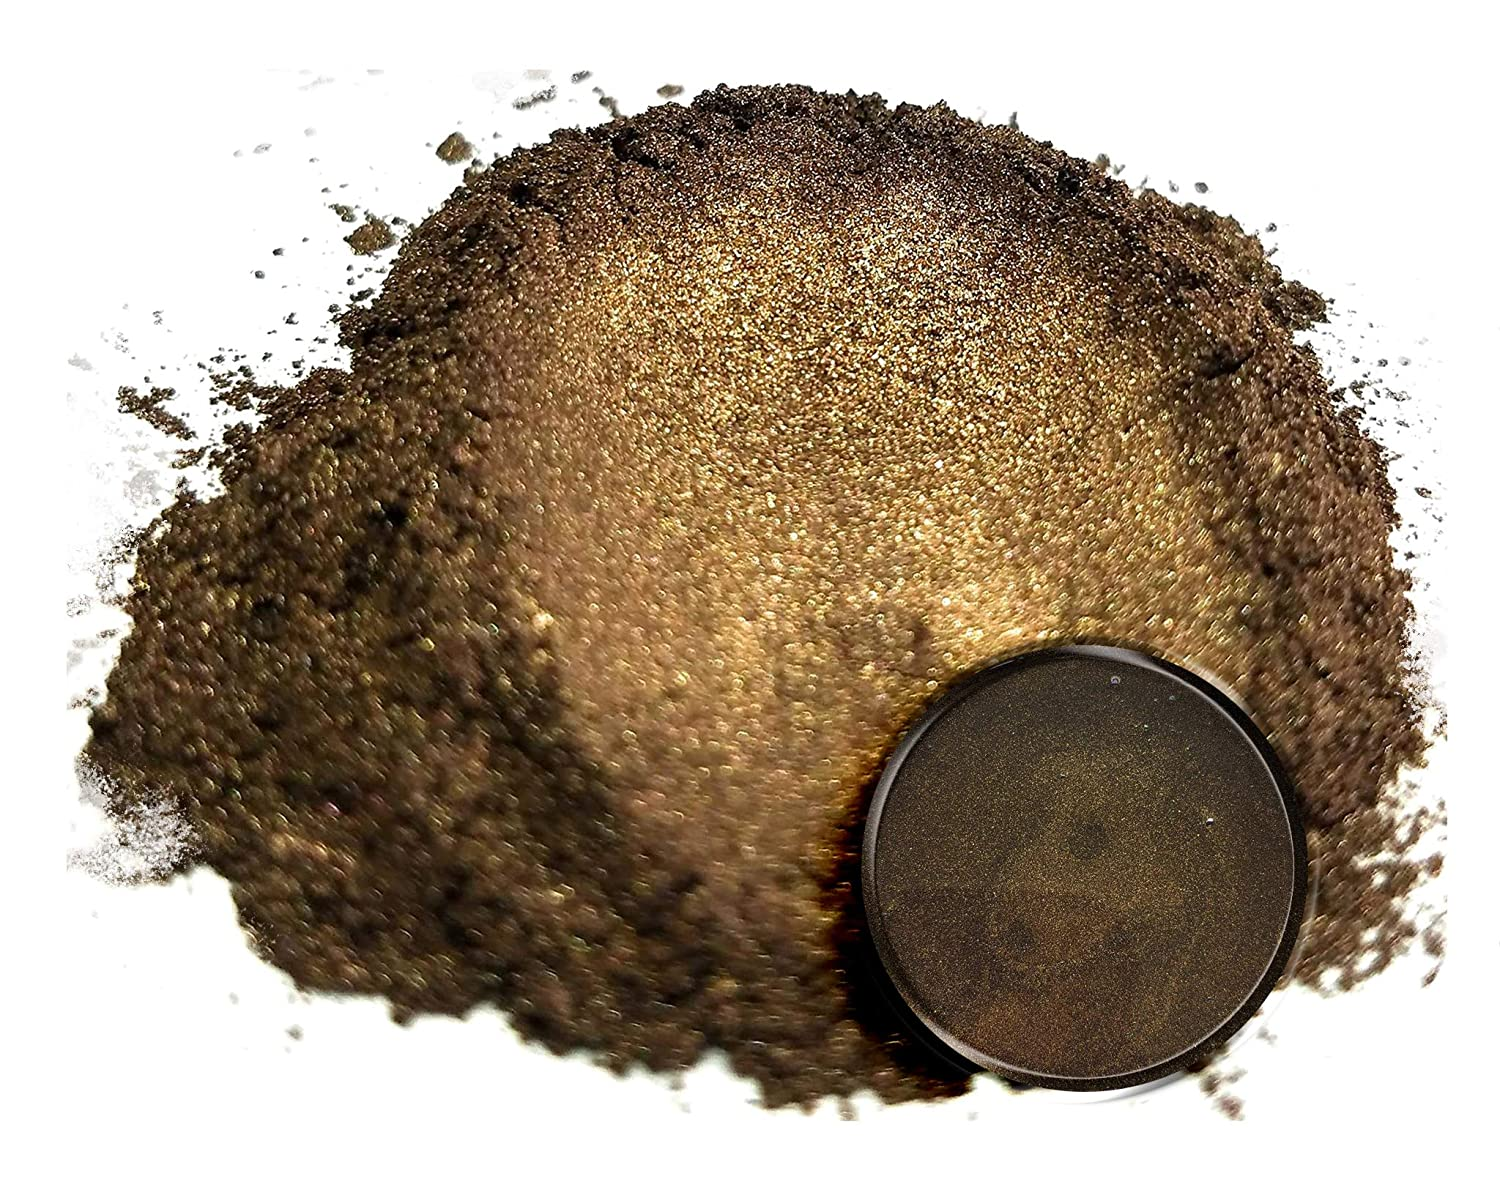 Mica Powder PigmentKendo Brown (50g) Multipurpose DIY Arts and Crafts Additive | Natural Bath Bombs, Resin, Paint, Epoxy, Soap, Nail Polish, Lip Balm Eye Candy Customz ECC-01090A